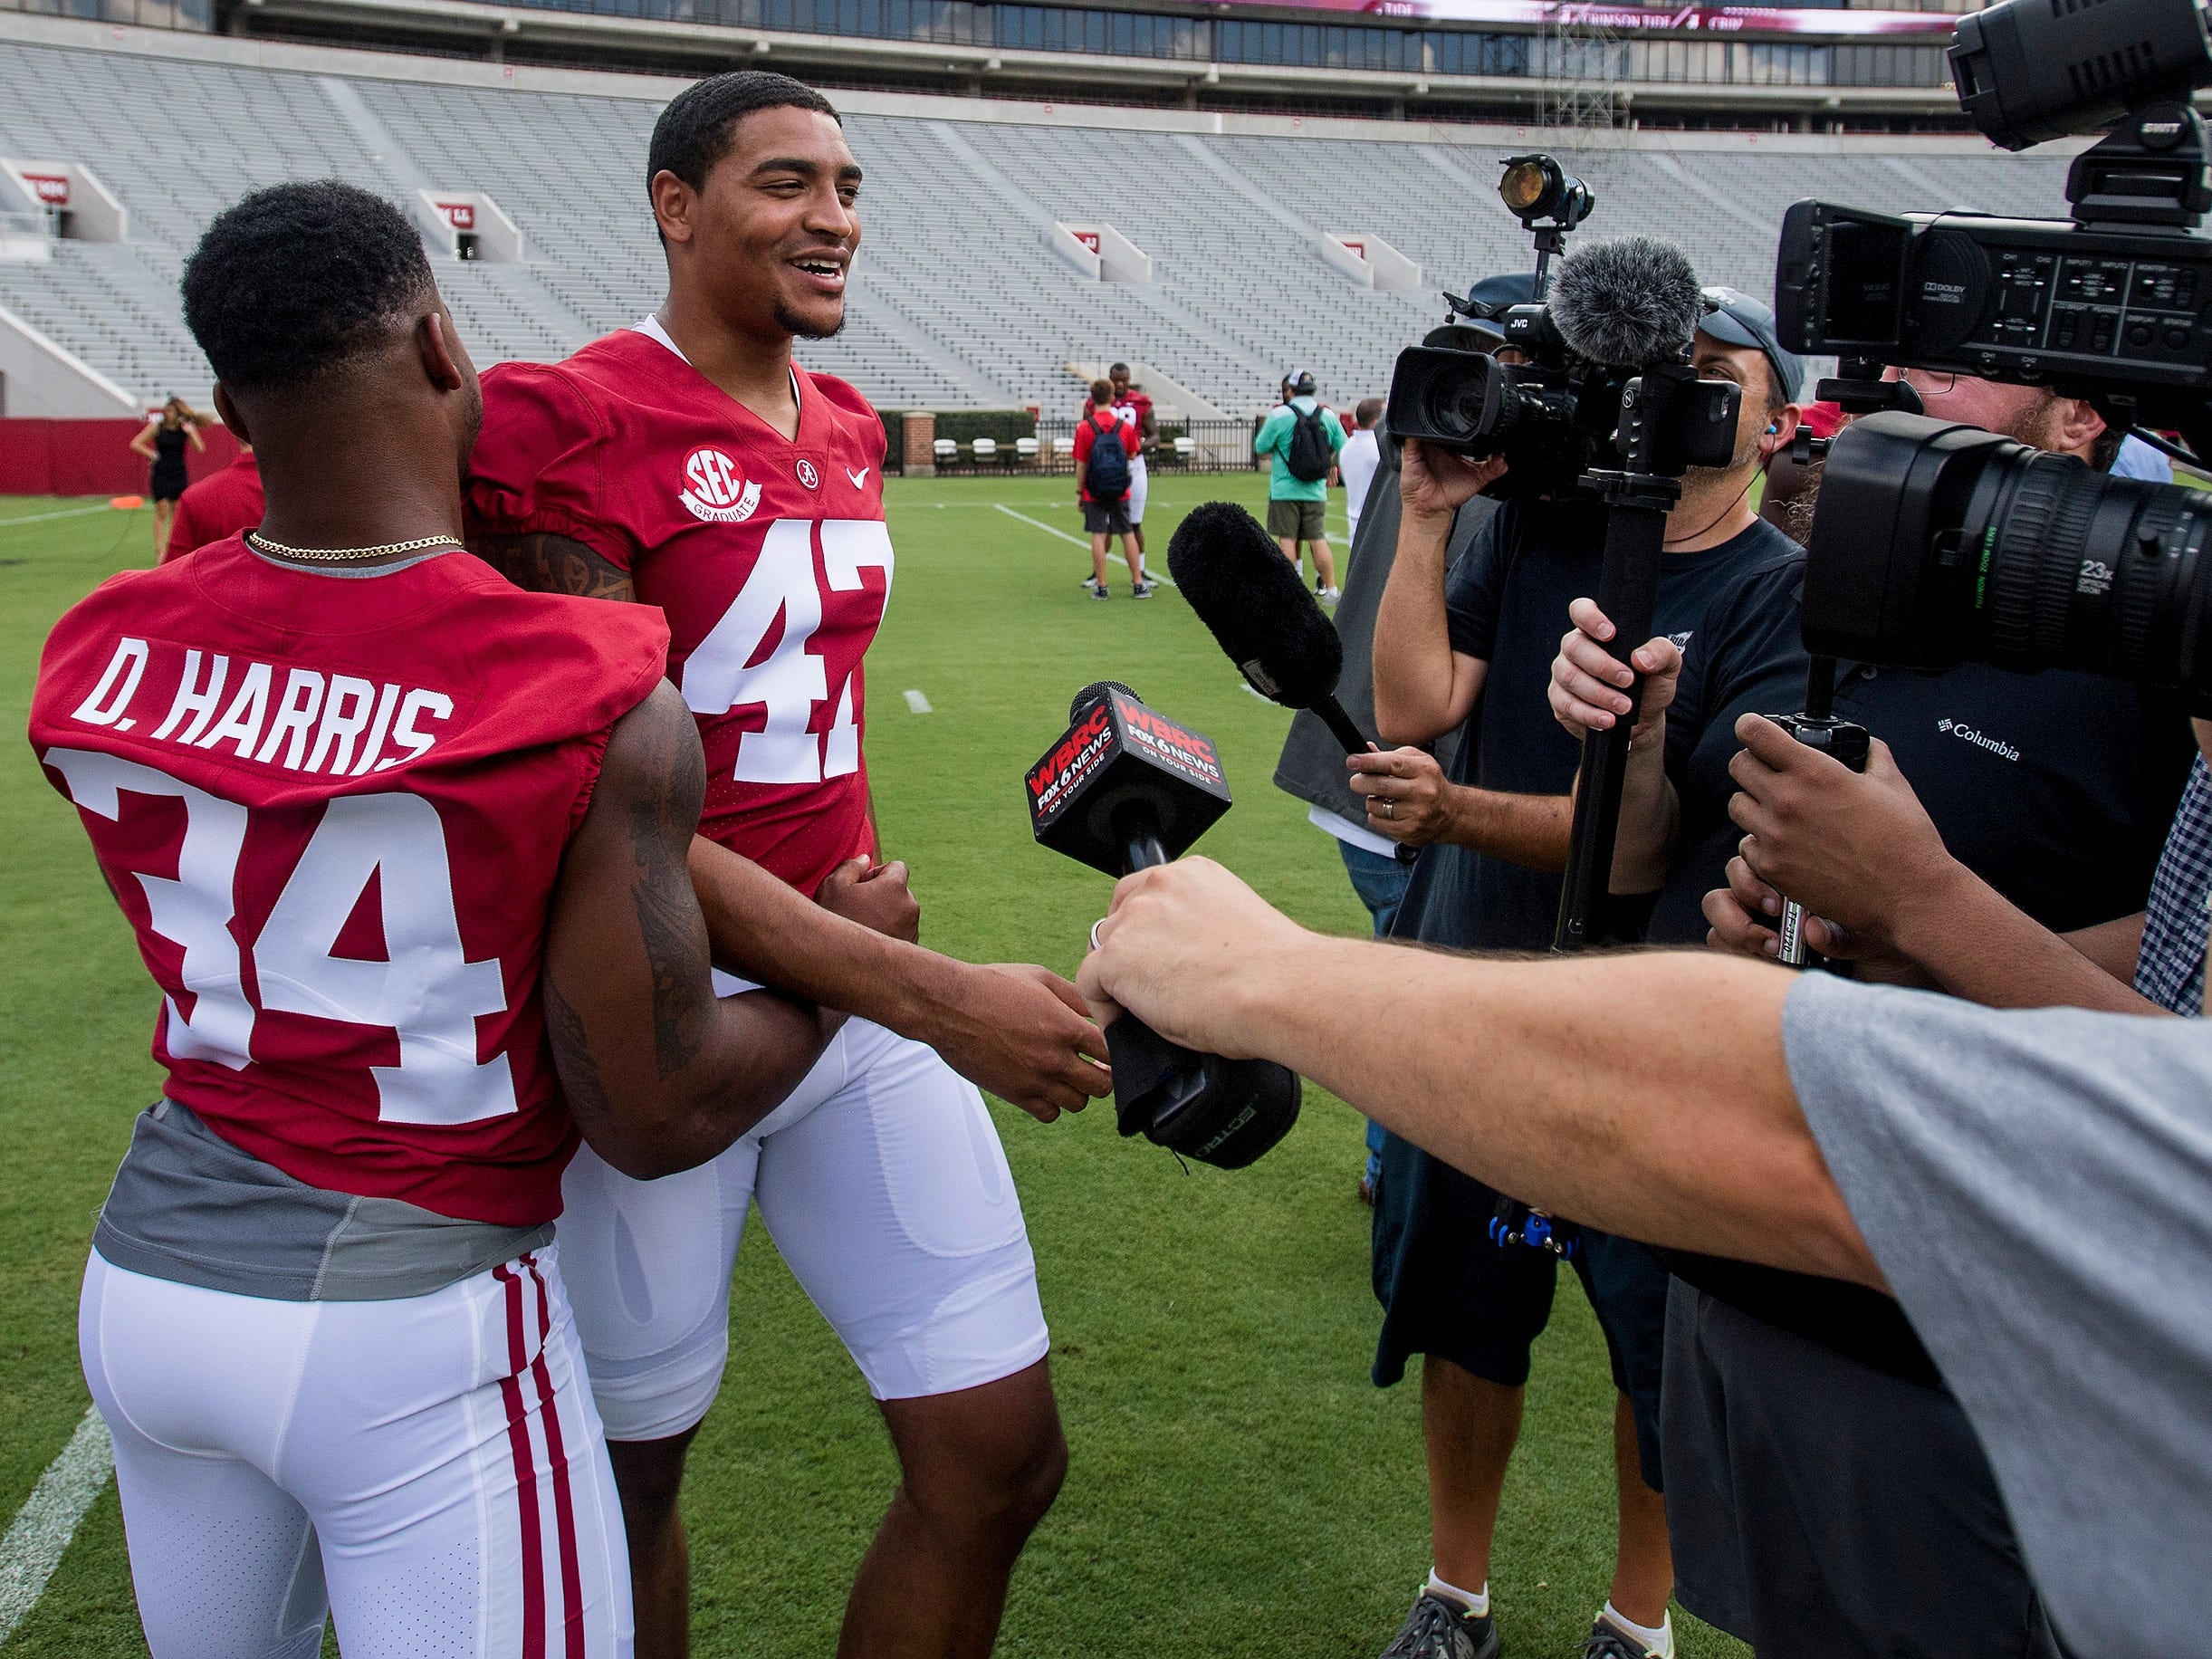 University of Alabama's Damien Harris (34) and Christian Miller (47)joke around with the media before fan day on the Alabama campus in Tuscaloosa, Ala. on Saturday August 4, 2018.